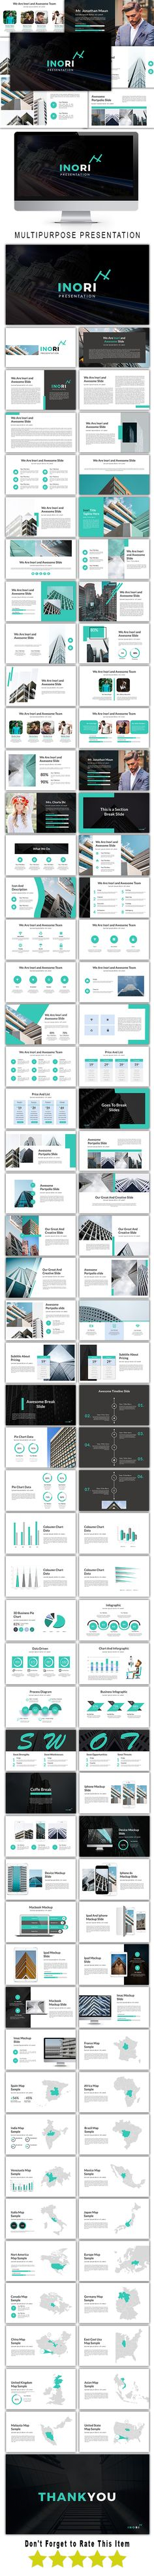 Inori Multipurpose Keynote Template by Spesifikdesign MAIN FILE:Images Placeholder Drag And Drop image Theme Black and White Option, Easy to change colors, Fully editable text, photos, Powerpoint Free, Professional Powerpoint Templates, Business Powerpoint Templates, Creative Powerpoint, Keynote Template, Image Theme, Slide Template, Broken Images, Aspect Ratio